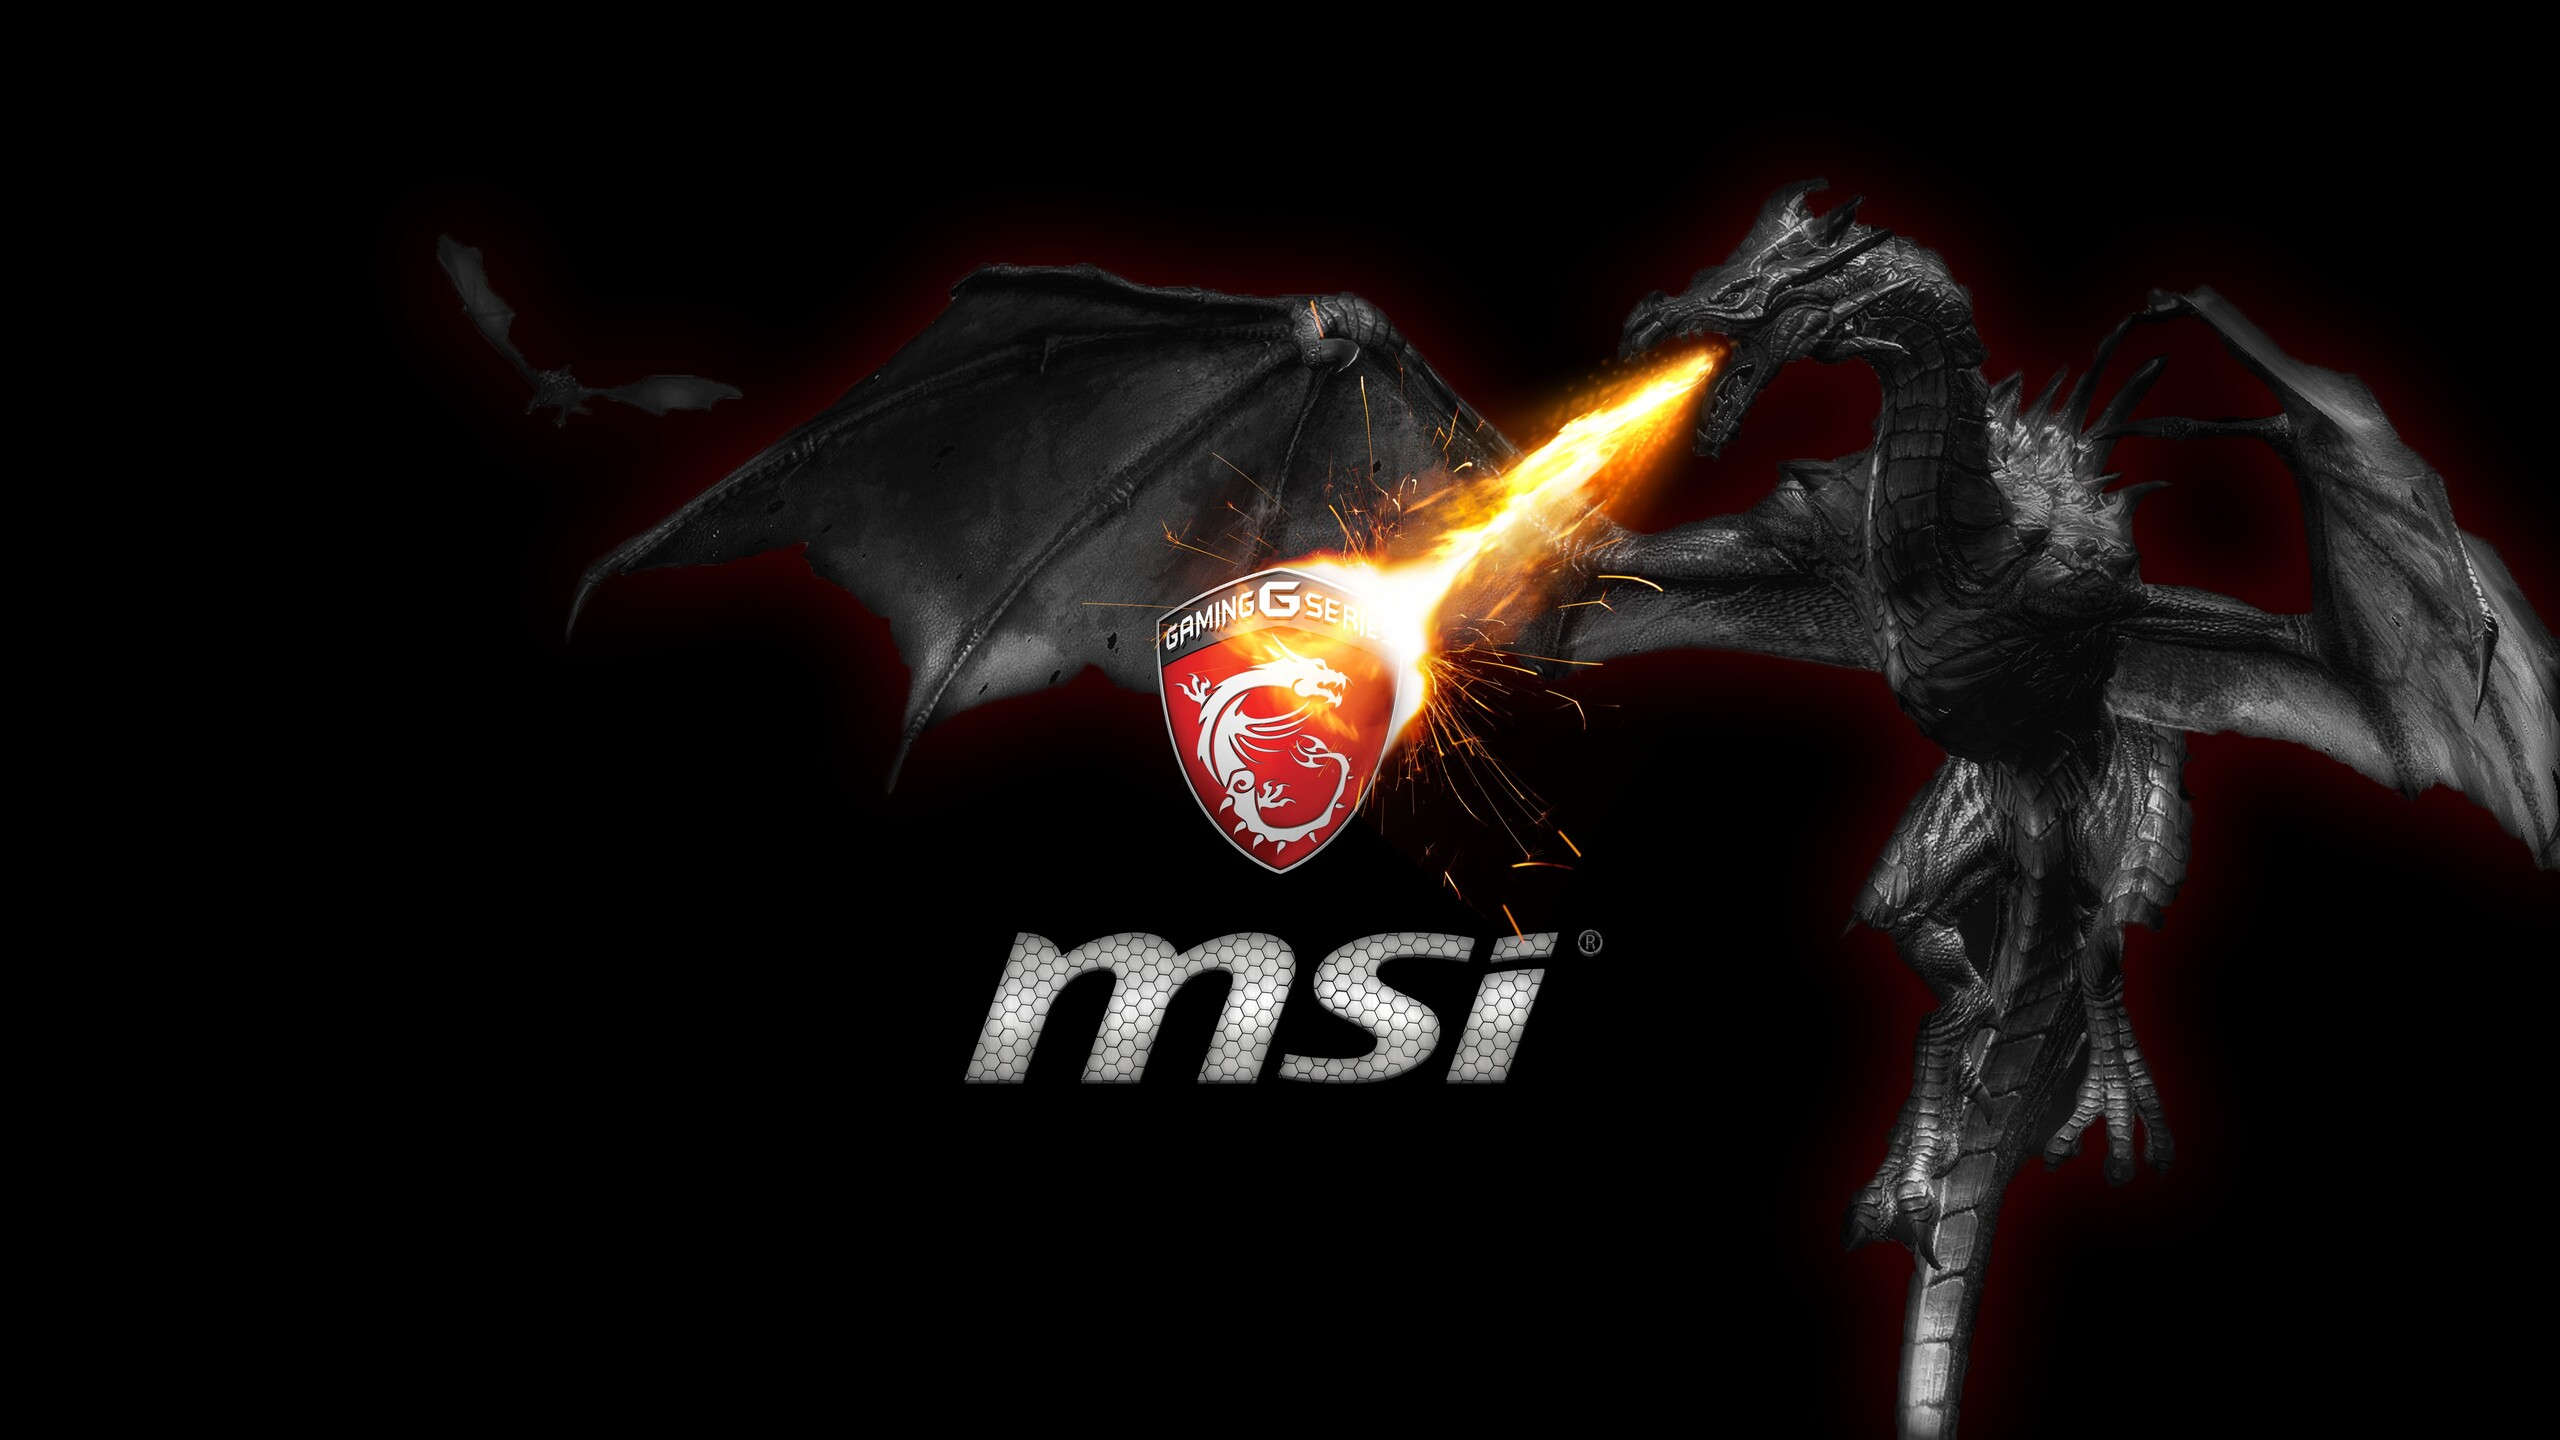 2560x1440 MSI 1440P Resolution HD 4k Wallpapers Images Backgrounds